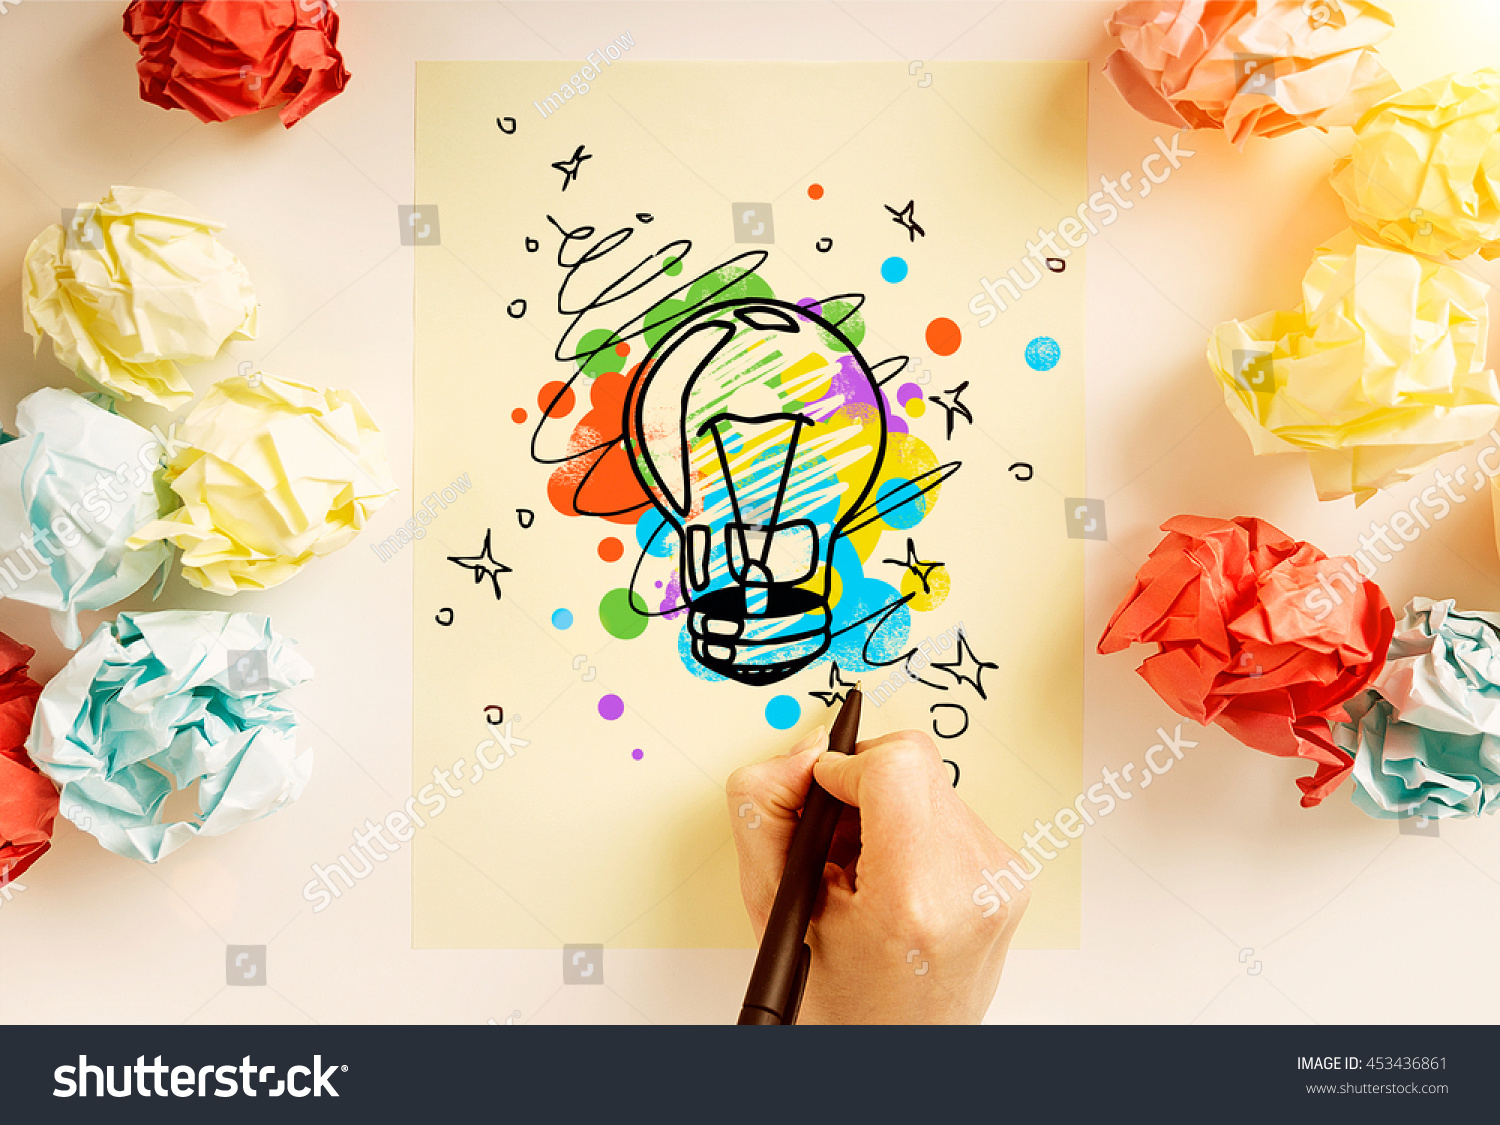 Creative Idea Creative Idea Concept Hand Drawing Abstract Stock Photo Edit Now